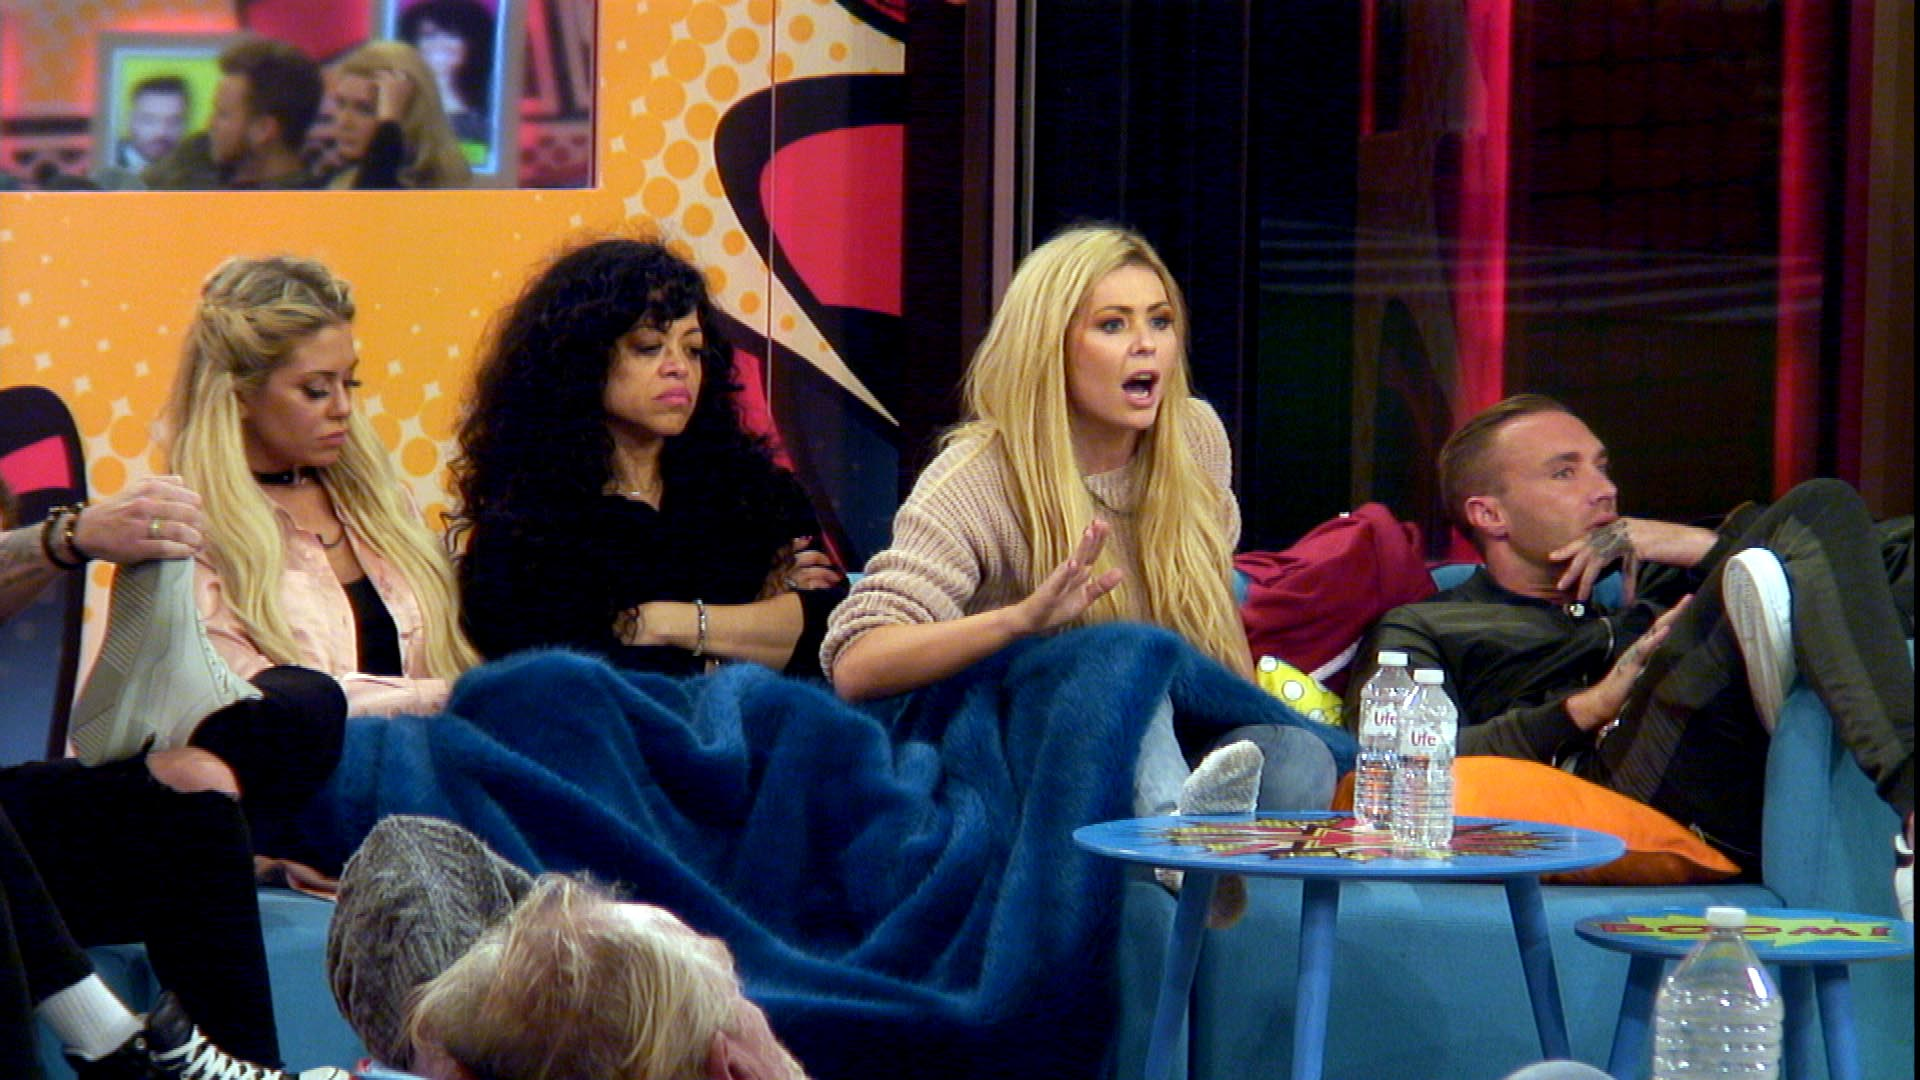 Day 21: Nominations are shown to the Housemates via screen in latest twist